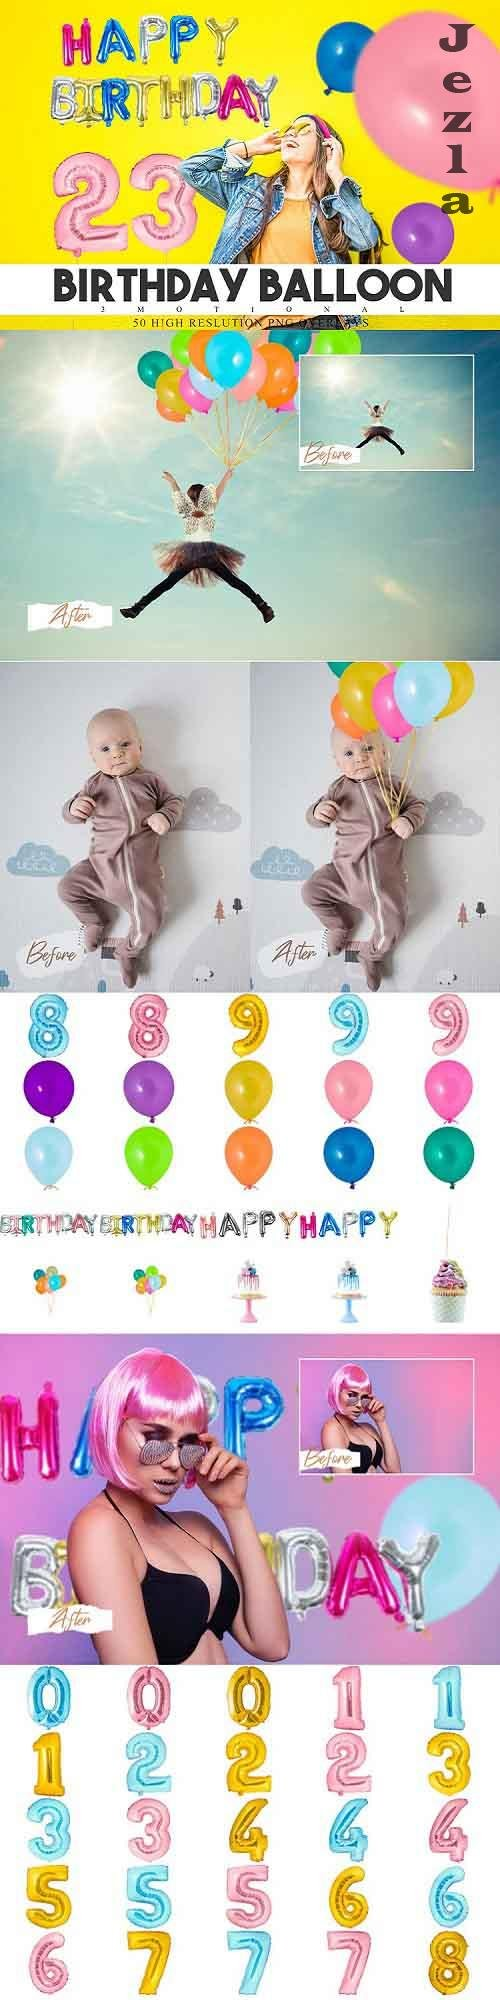 50 Birthday Balloon PNG Overlays 4990999